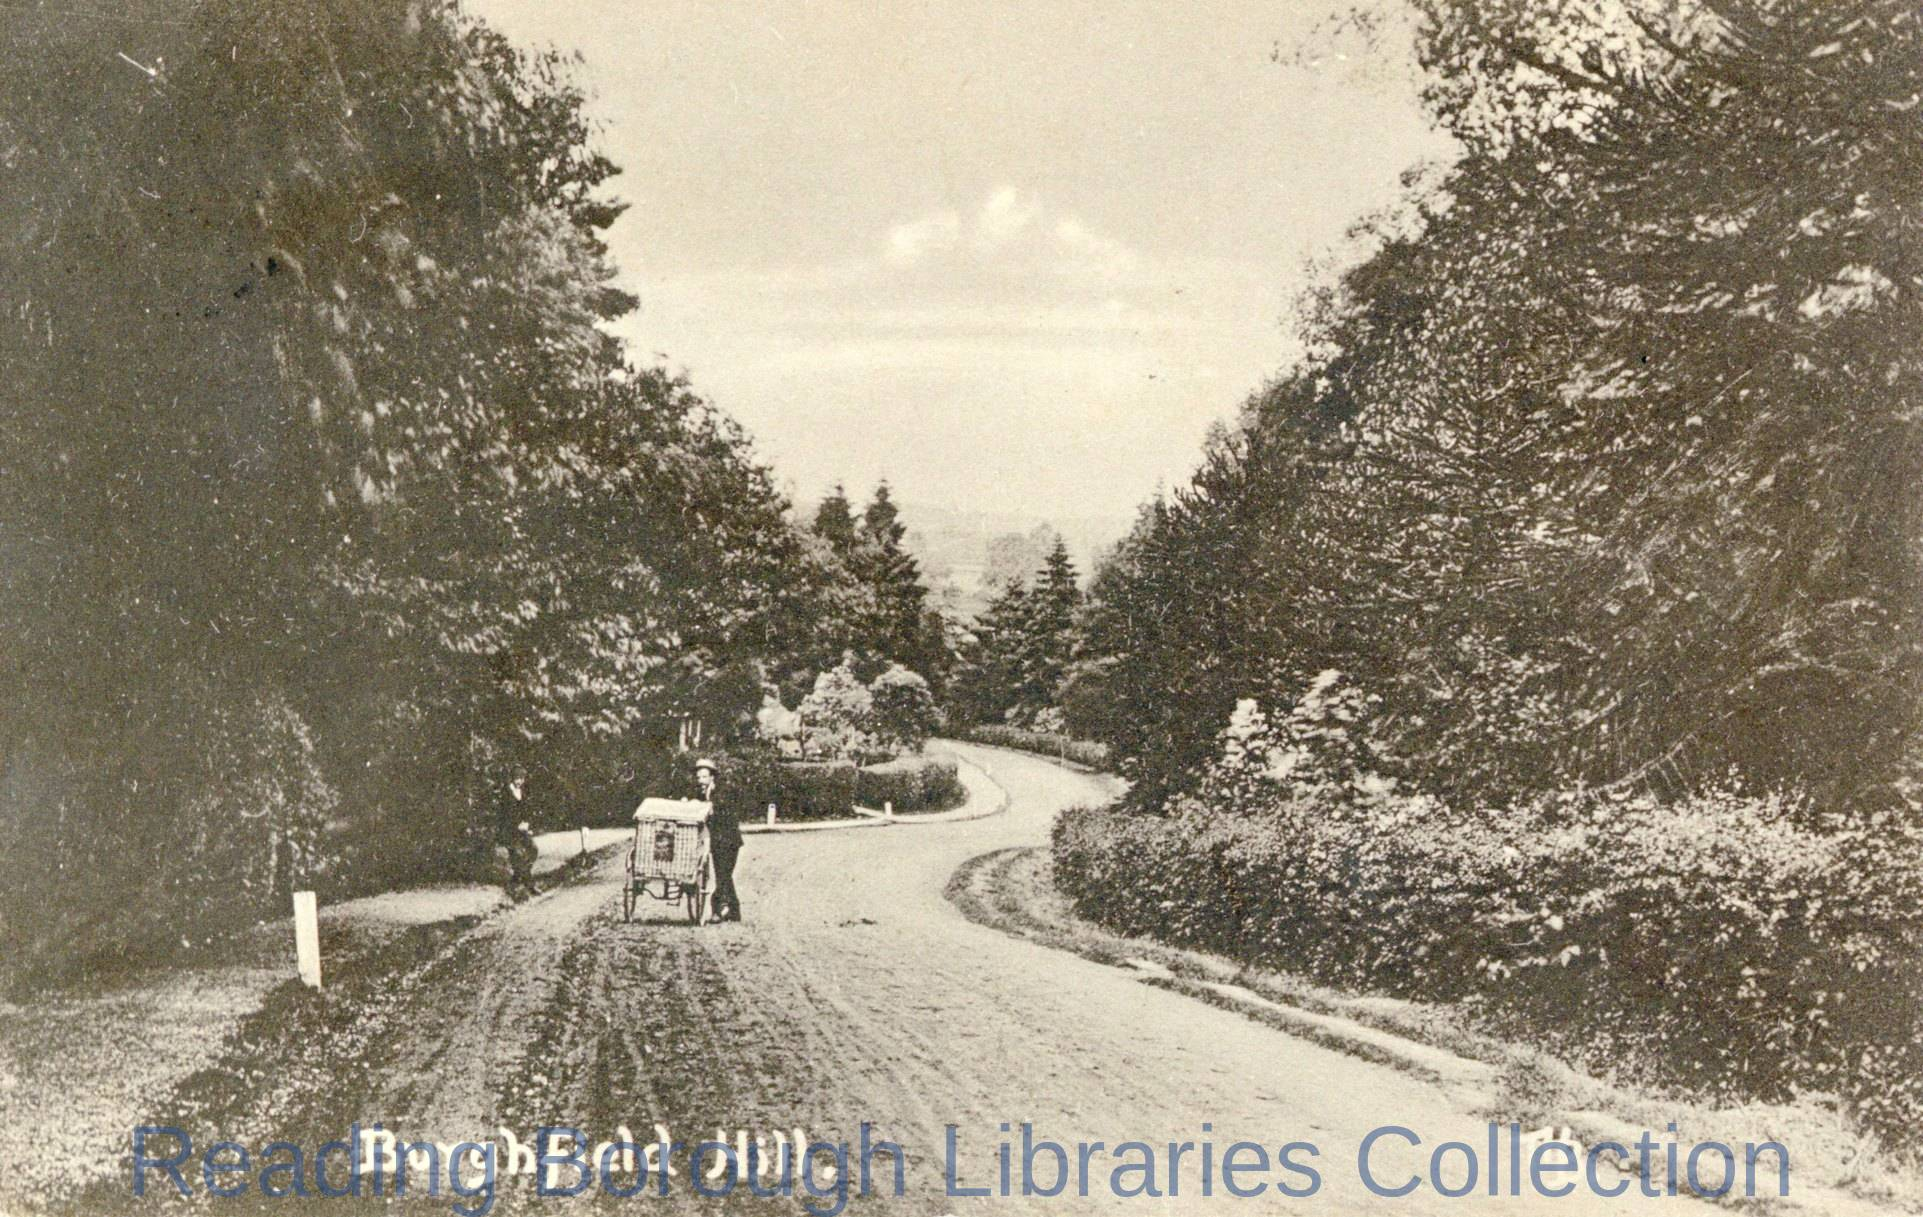 A man pushing a handcart, which carries a large wicker hamper up the hill towards the camera, Burghfield Hill, c1910